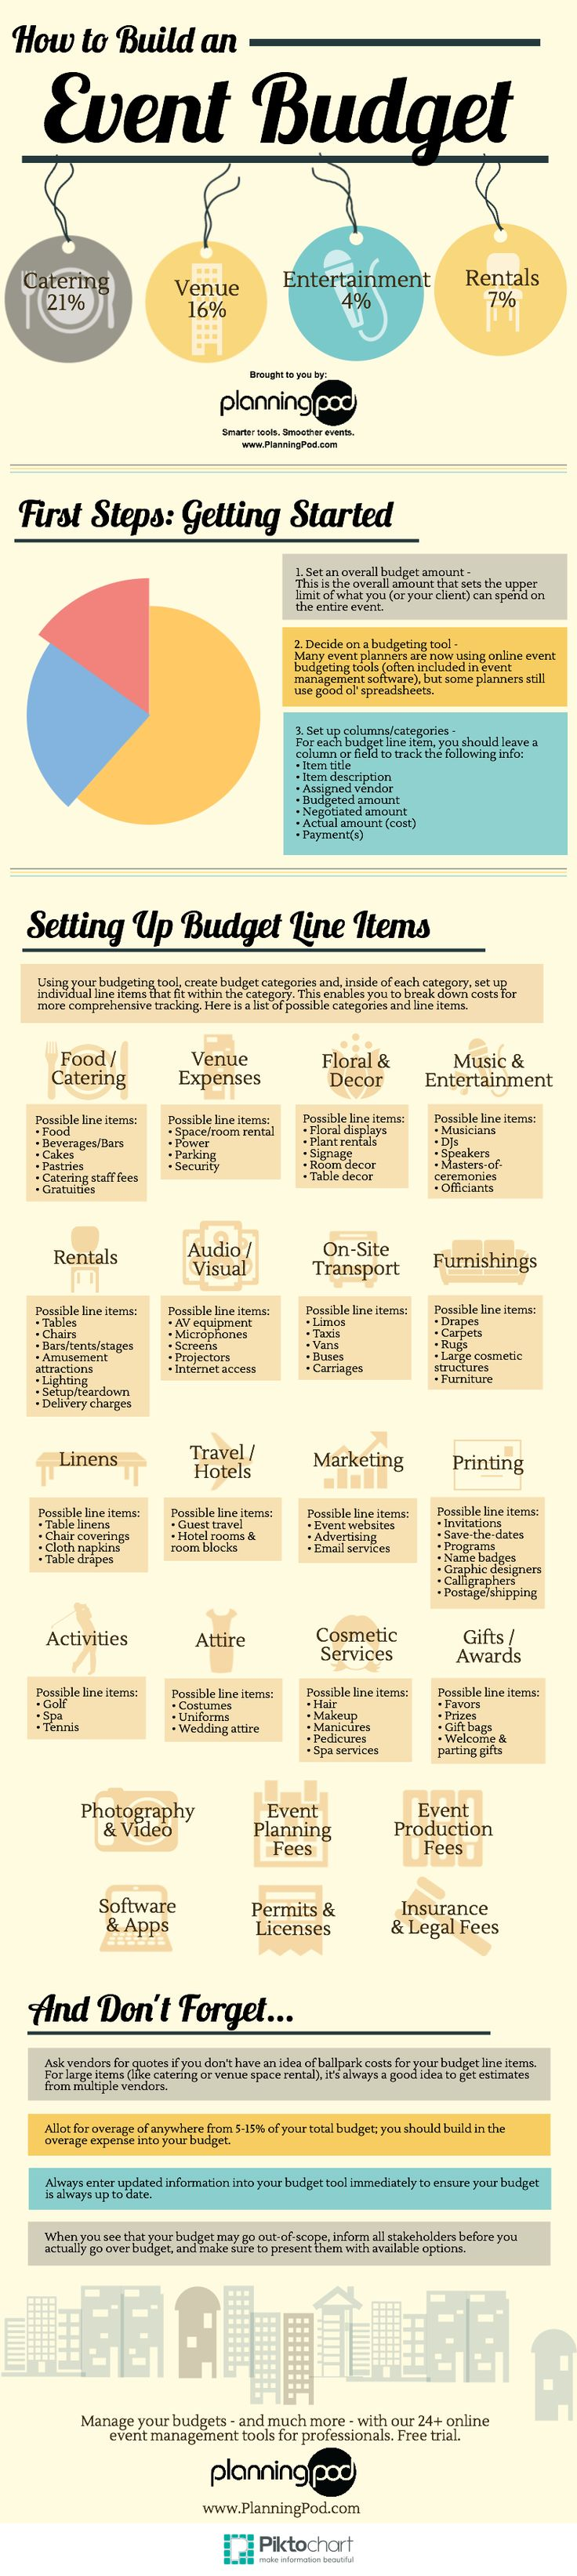 Event Budget Is A Great Place To Start When Organizing And Planning Your